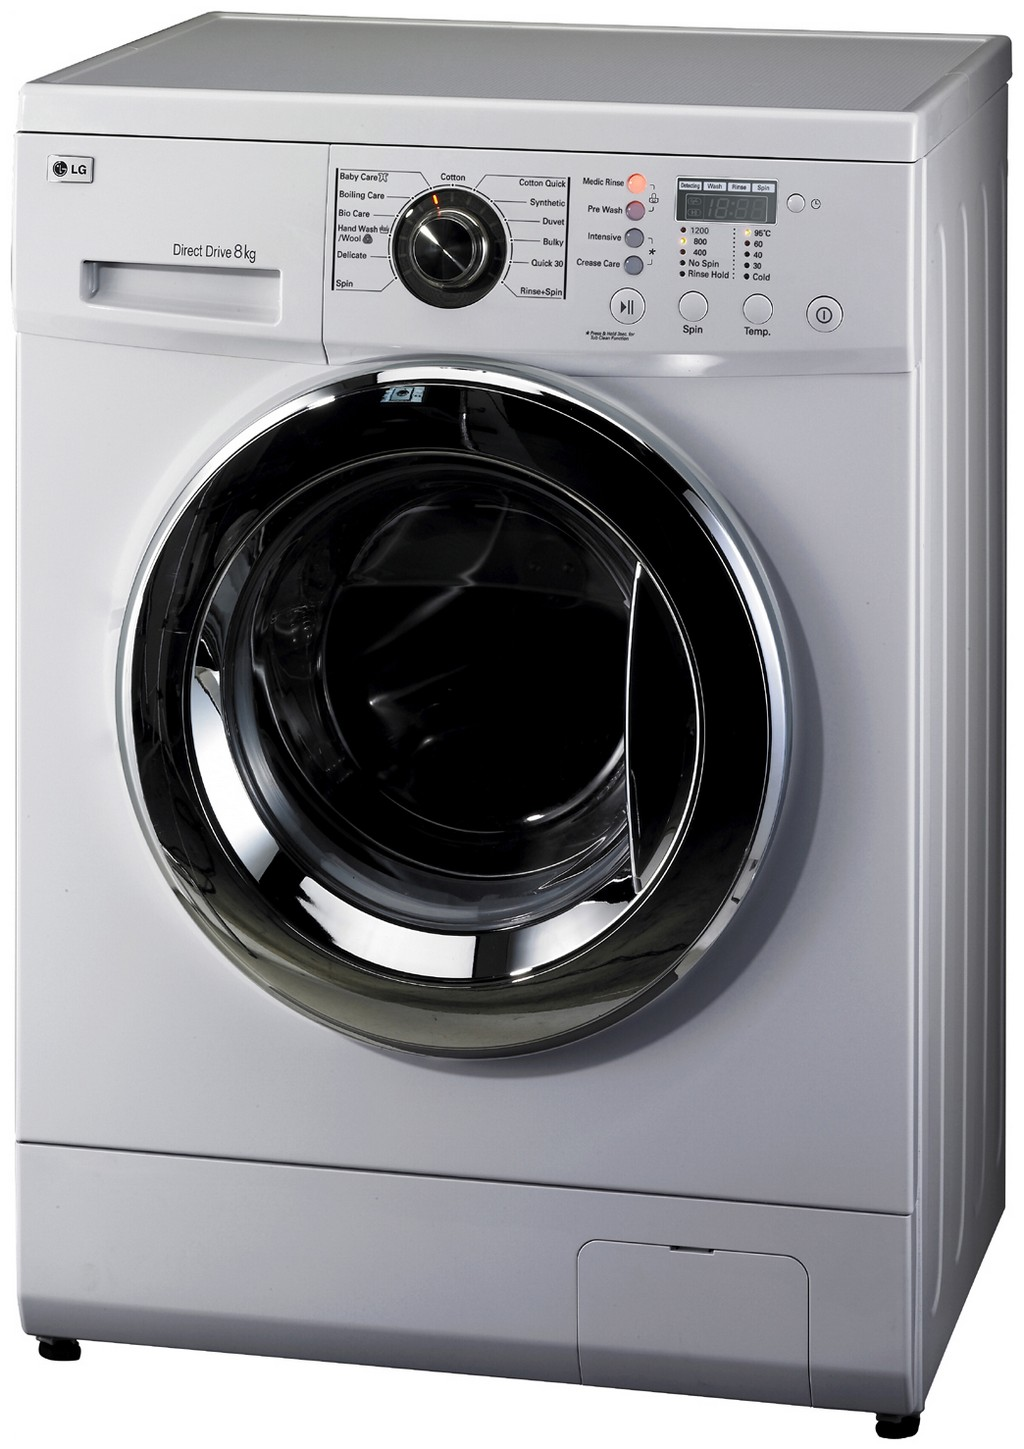 fully automatic washing machine, maytag washing machine, hoover washing machine